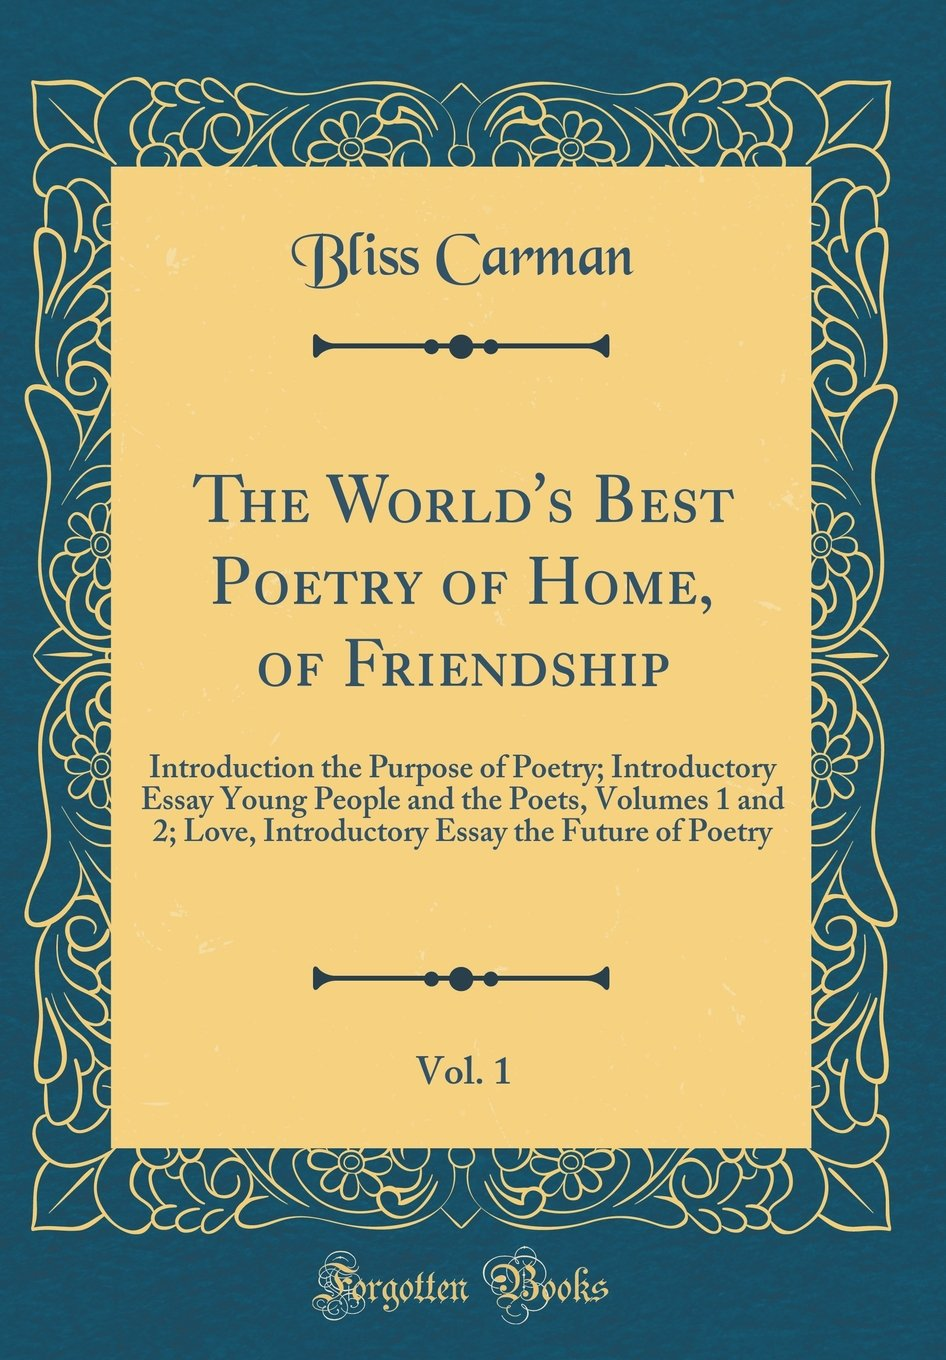 Download The World's Best Poetry of Home, of Friendship, Vol. 1: Introduction the Purpose of Poetry; Introductory Essay Young People and the Poets, Volumes 1 ... Essay the Future of Poetry (Classic Reprint) PDF